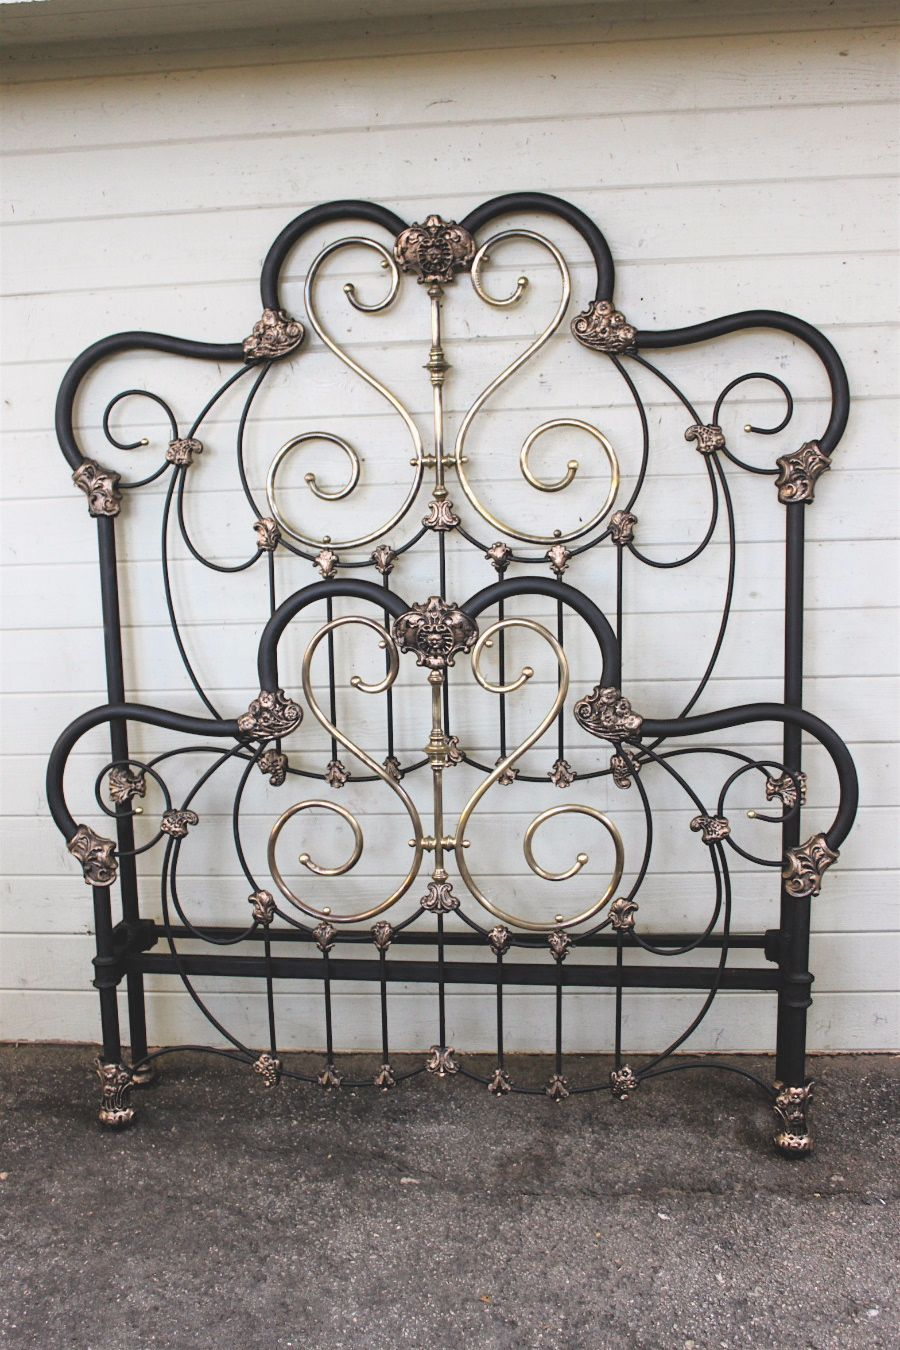 Antique iron bed queen - Cathouse Iron Beds Oh My Goodness I Love This D